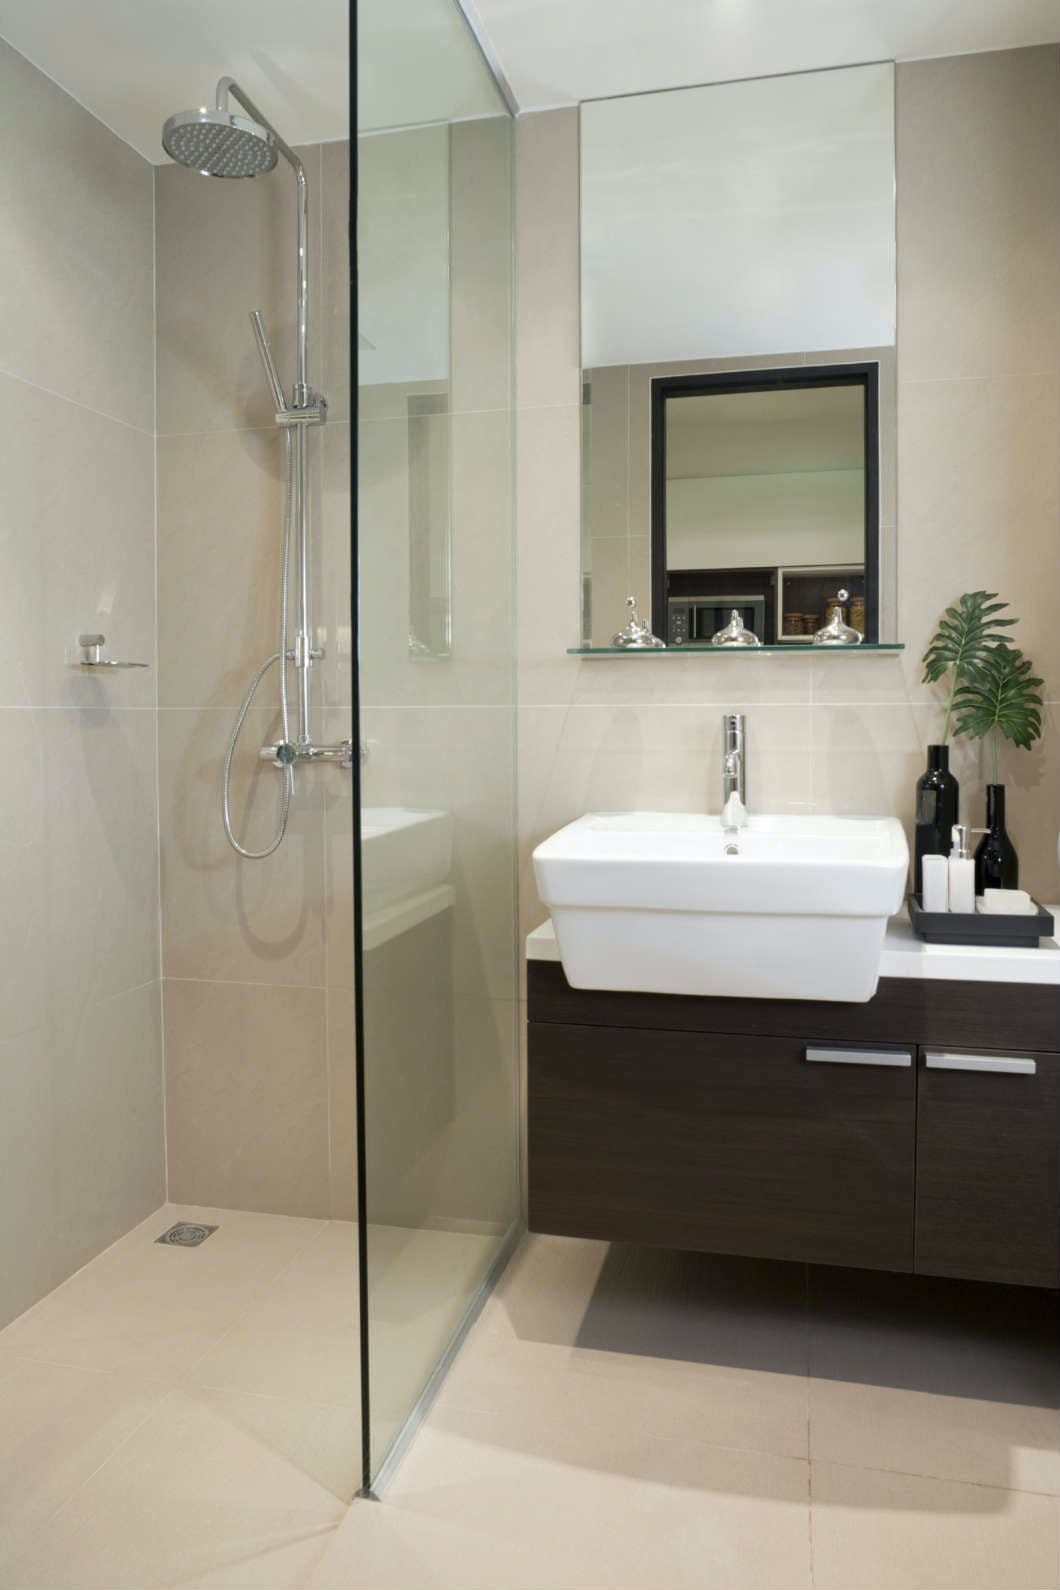 Dream en-suite bathrooms, designed & fit by More Bathrooms.